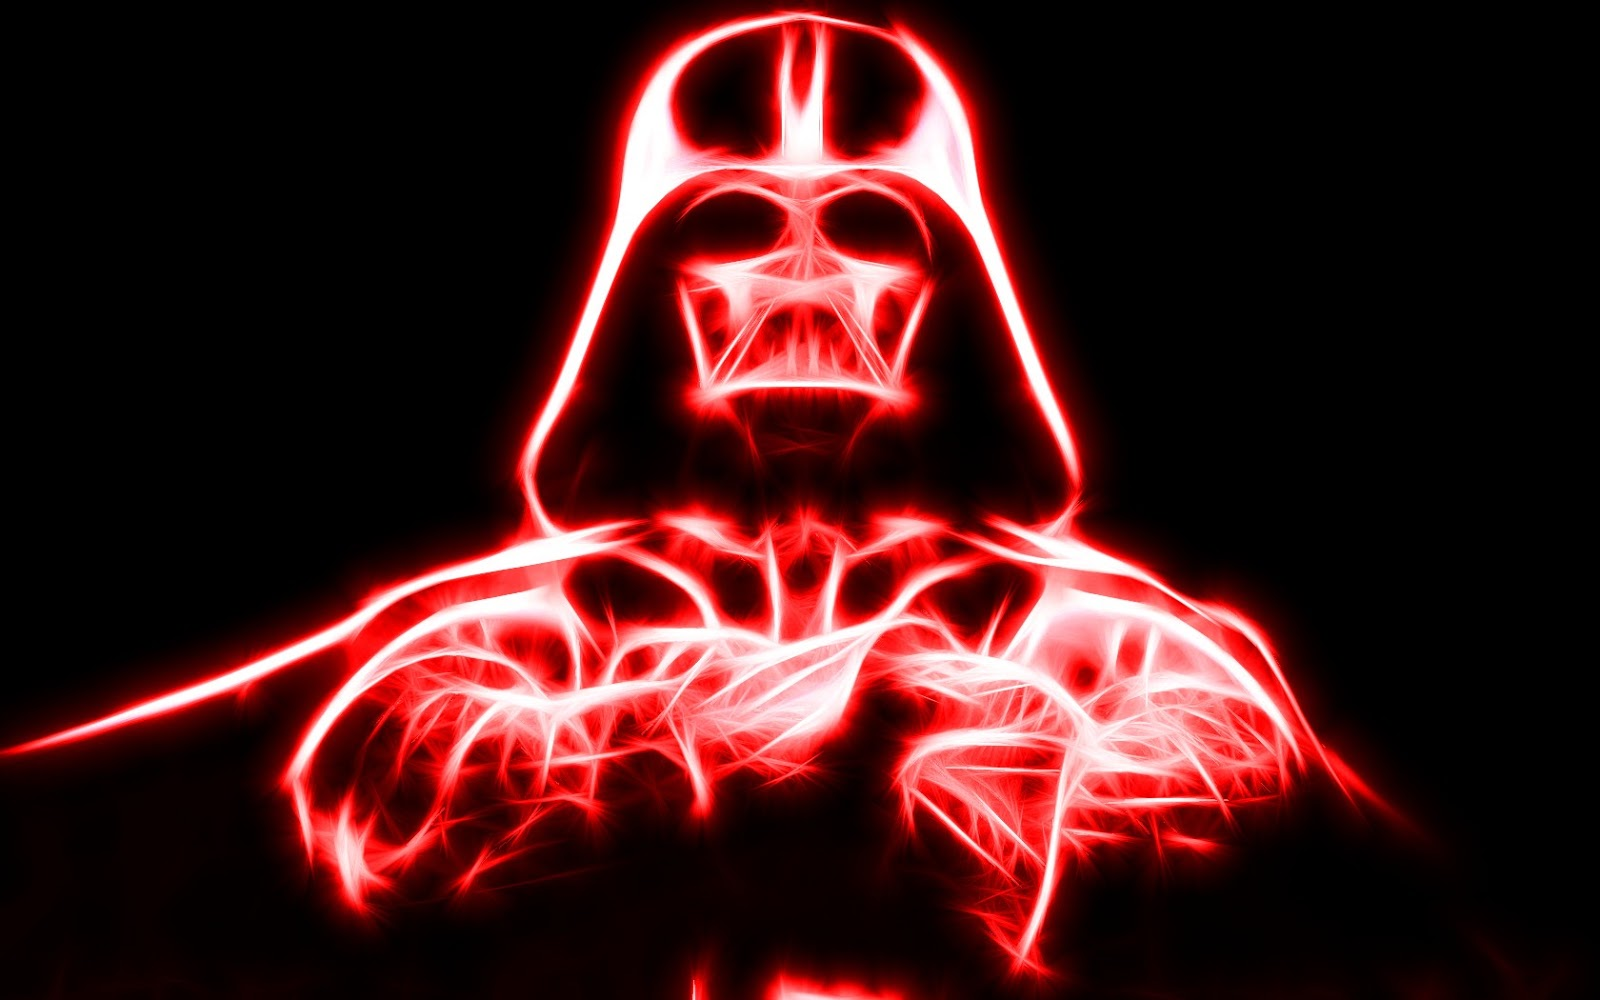 Neon Wallpapers for Android - Neon Star Wars